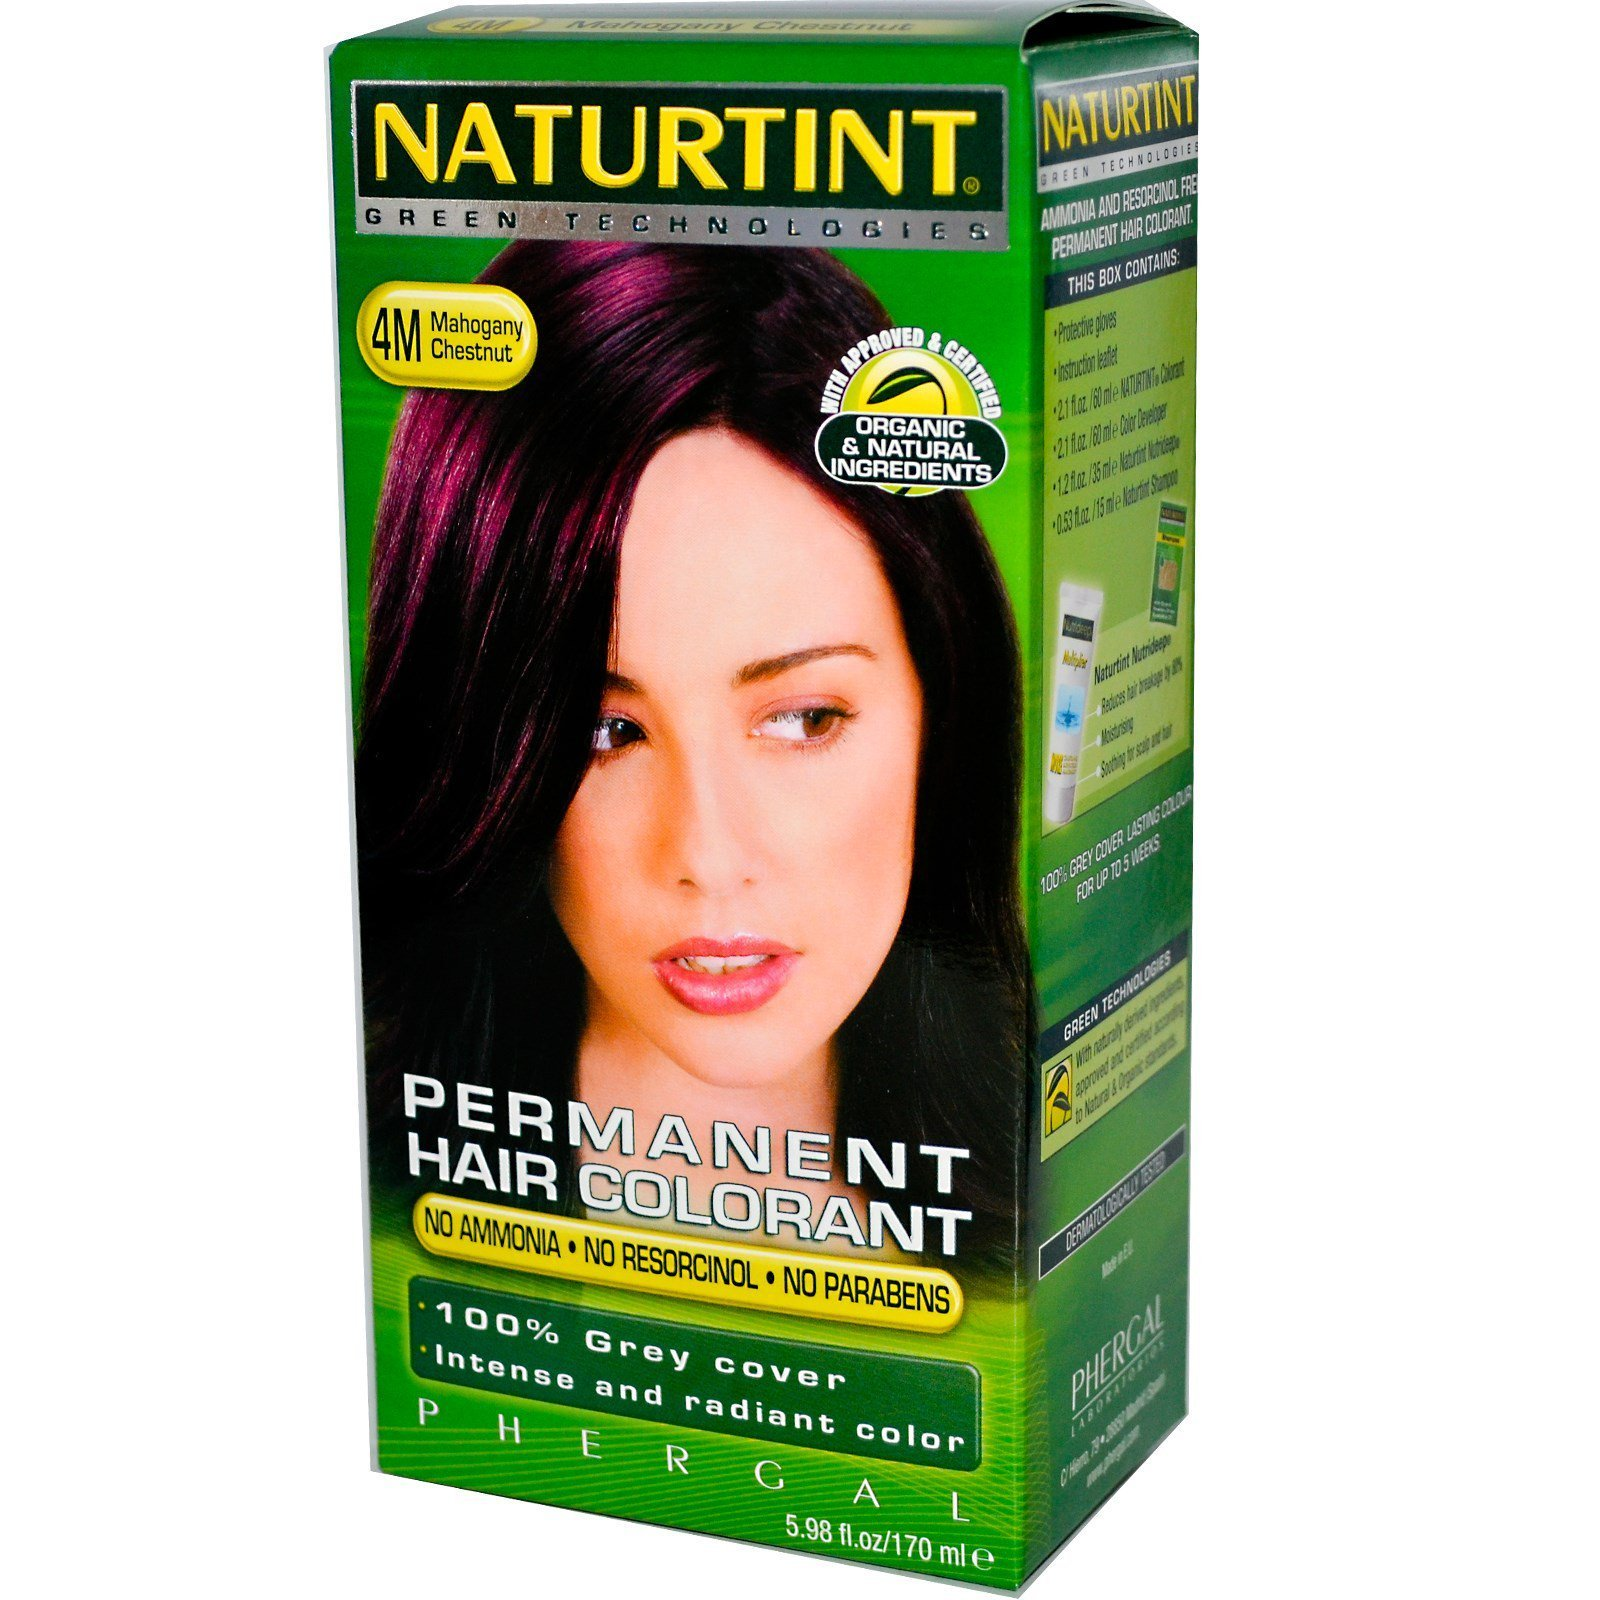 The Best Naturtint Permanent Hair Colorant 4M Mahogany Chestnut Pictures